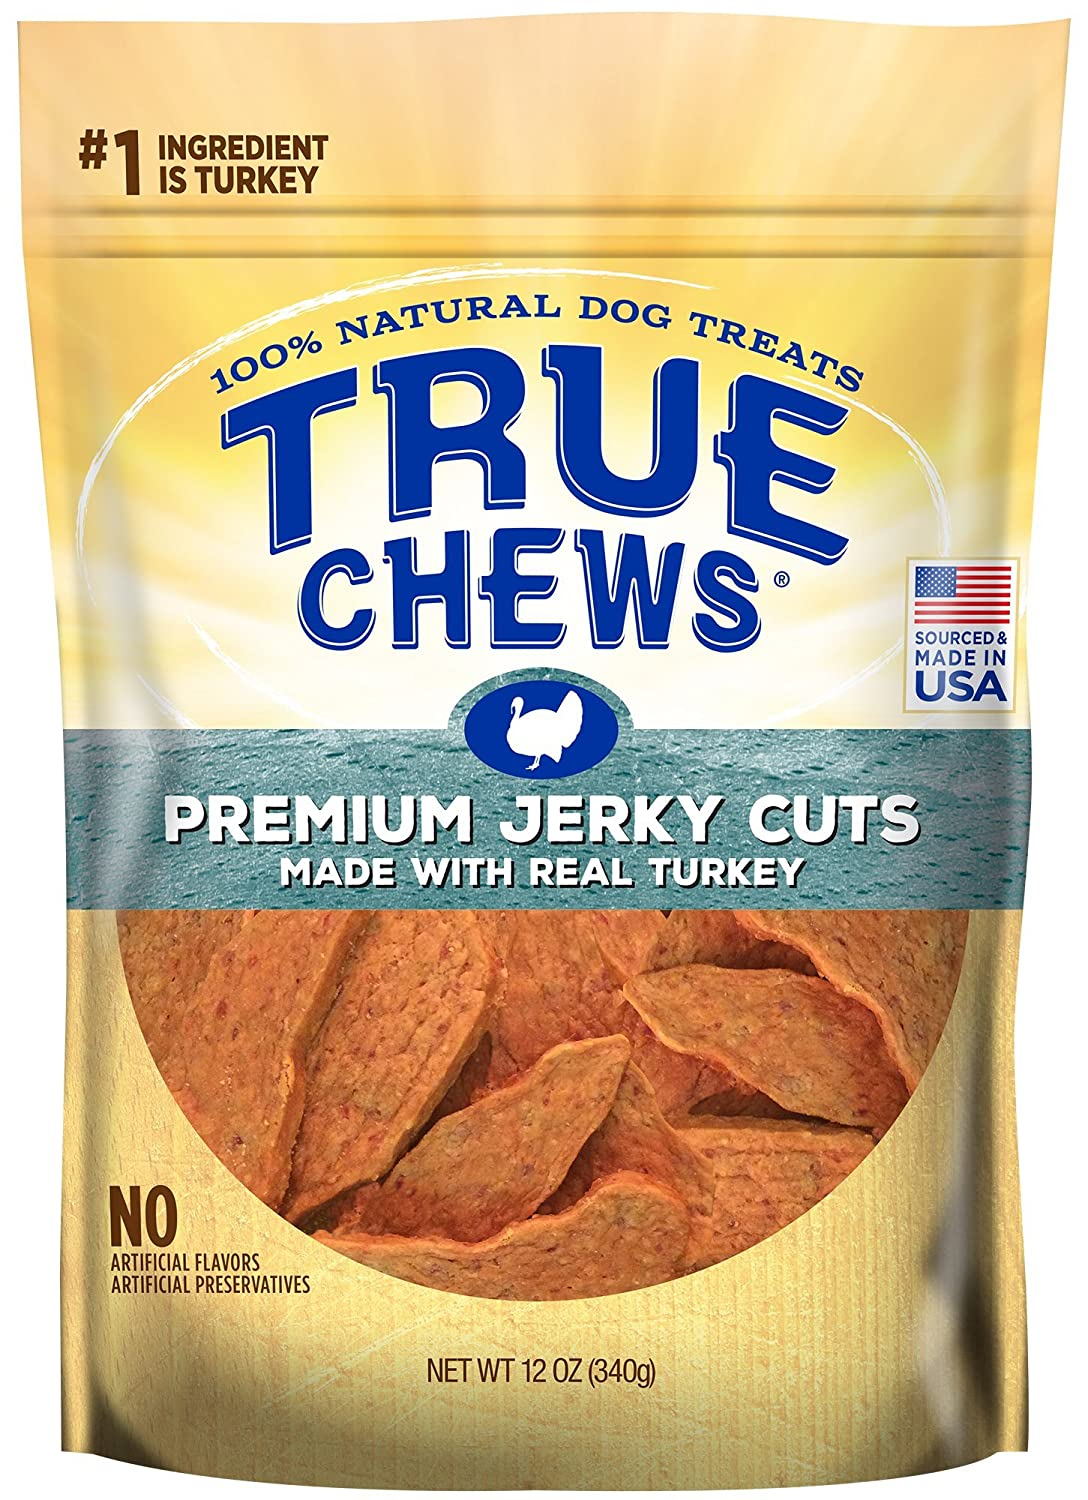 Medium True Chews Premium Jerky Cuts Made with Real Turkey 12 oz, 6 Count